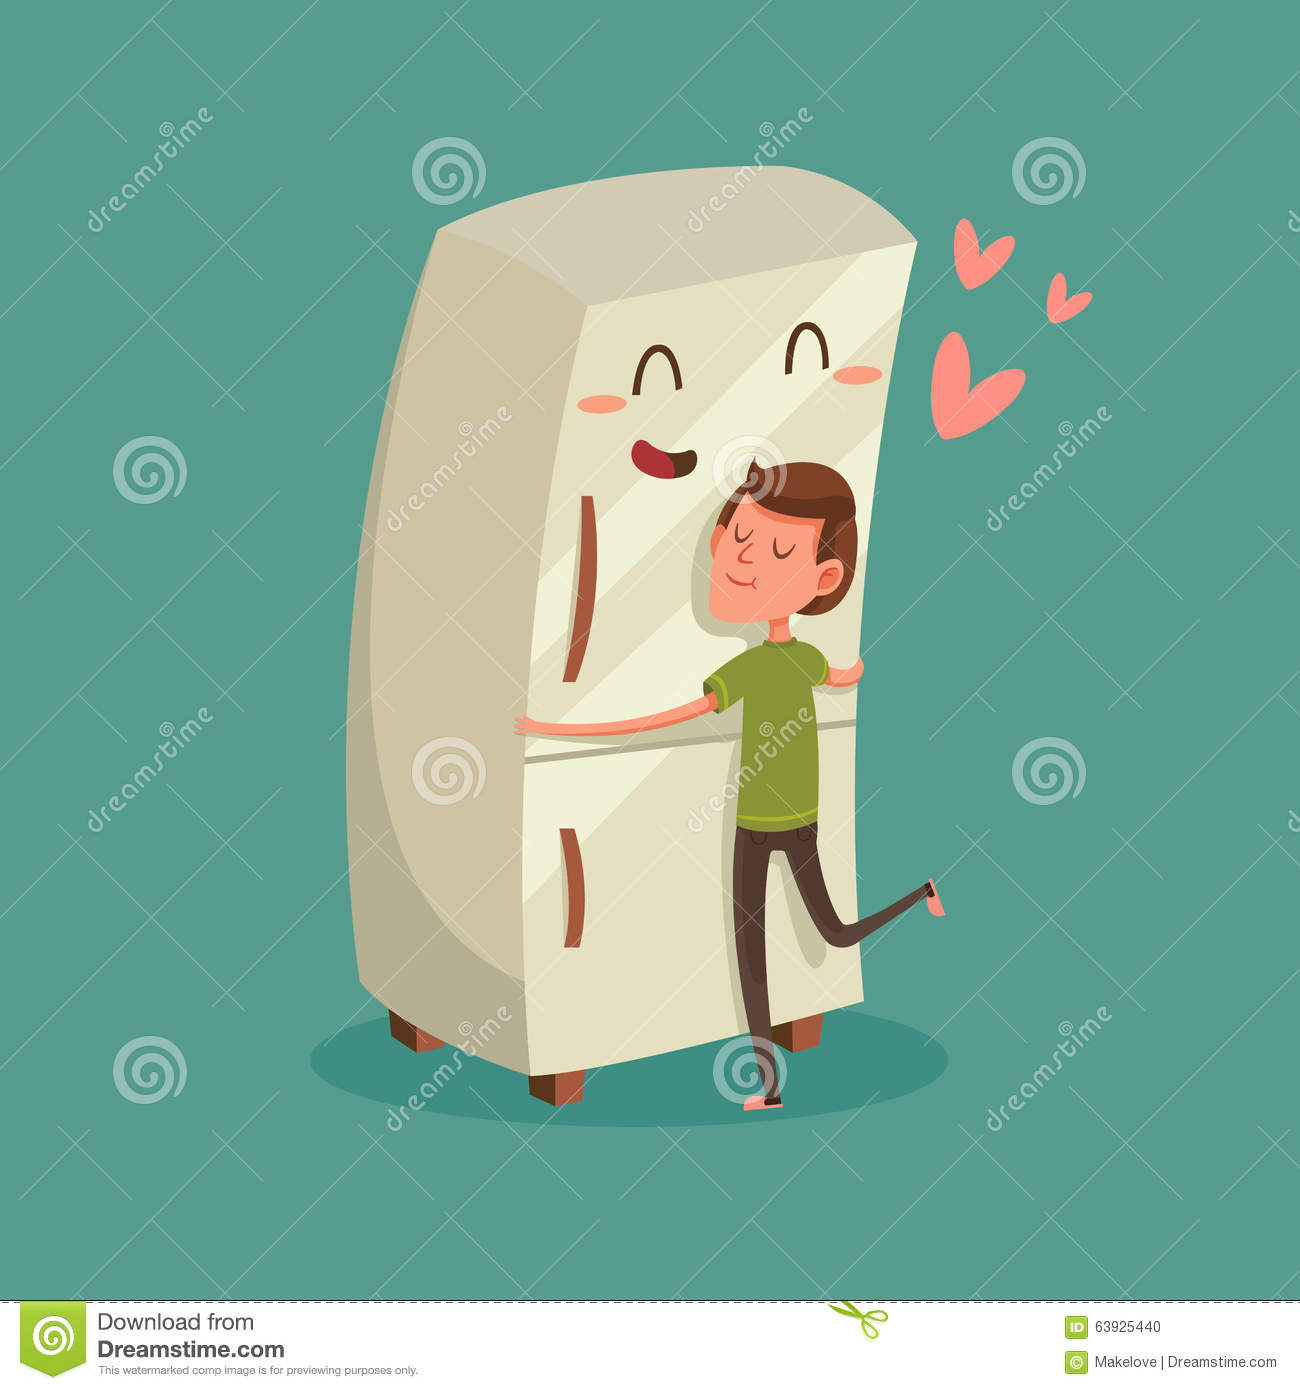 man hugging refrigerator stock vector illustration of hug clipart black and white hug clipart png